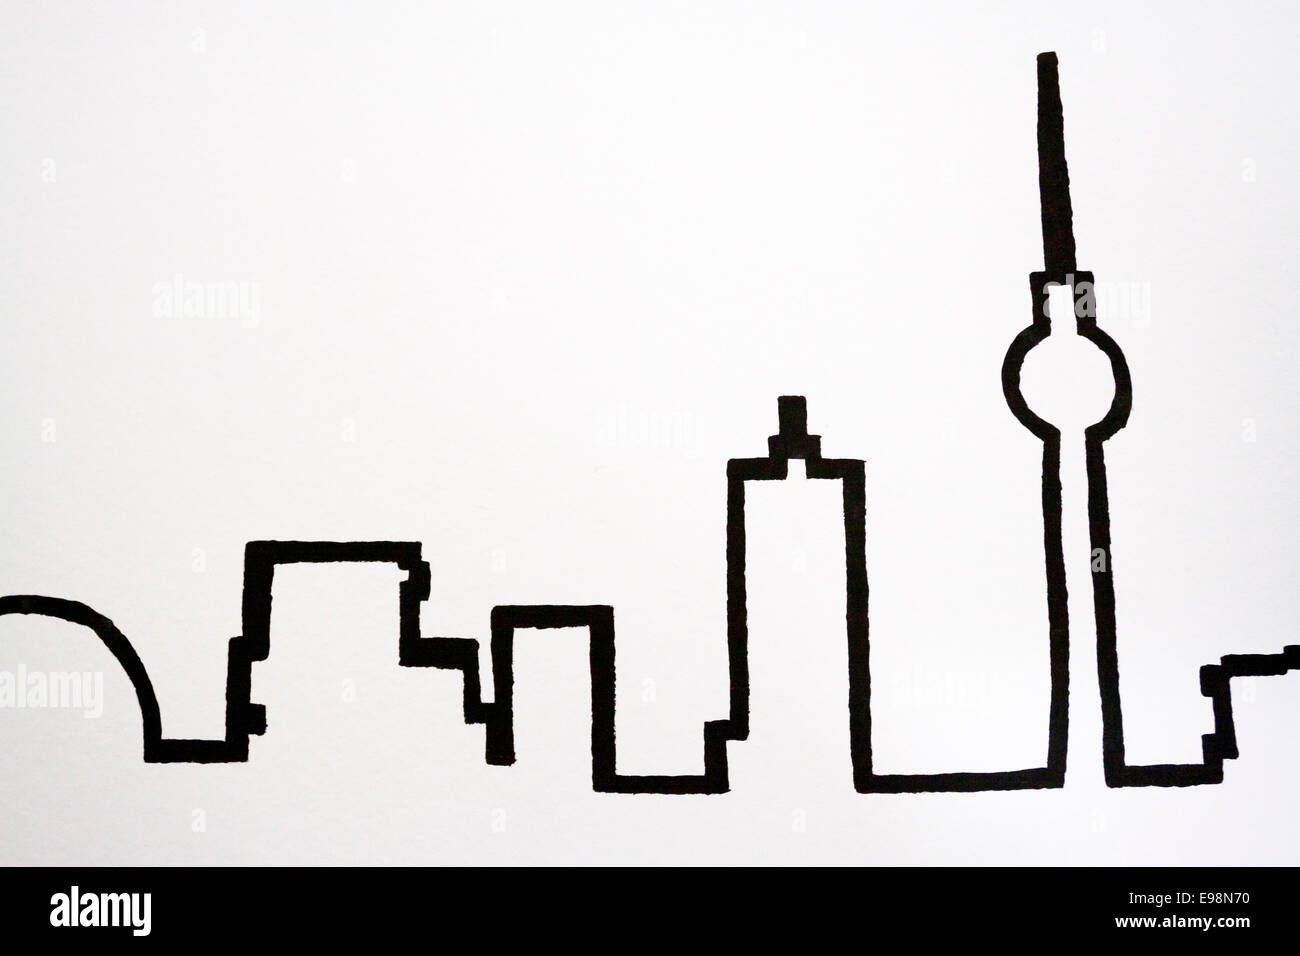 Silhouettes of the most famous landmarks Berlin. Berlin, Berlin-Brandenburg. Germany. Berlin, Berlin-Brandenburg. - Stock Image